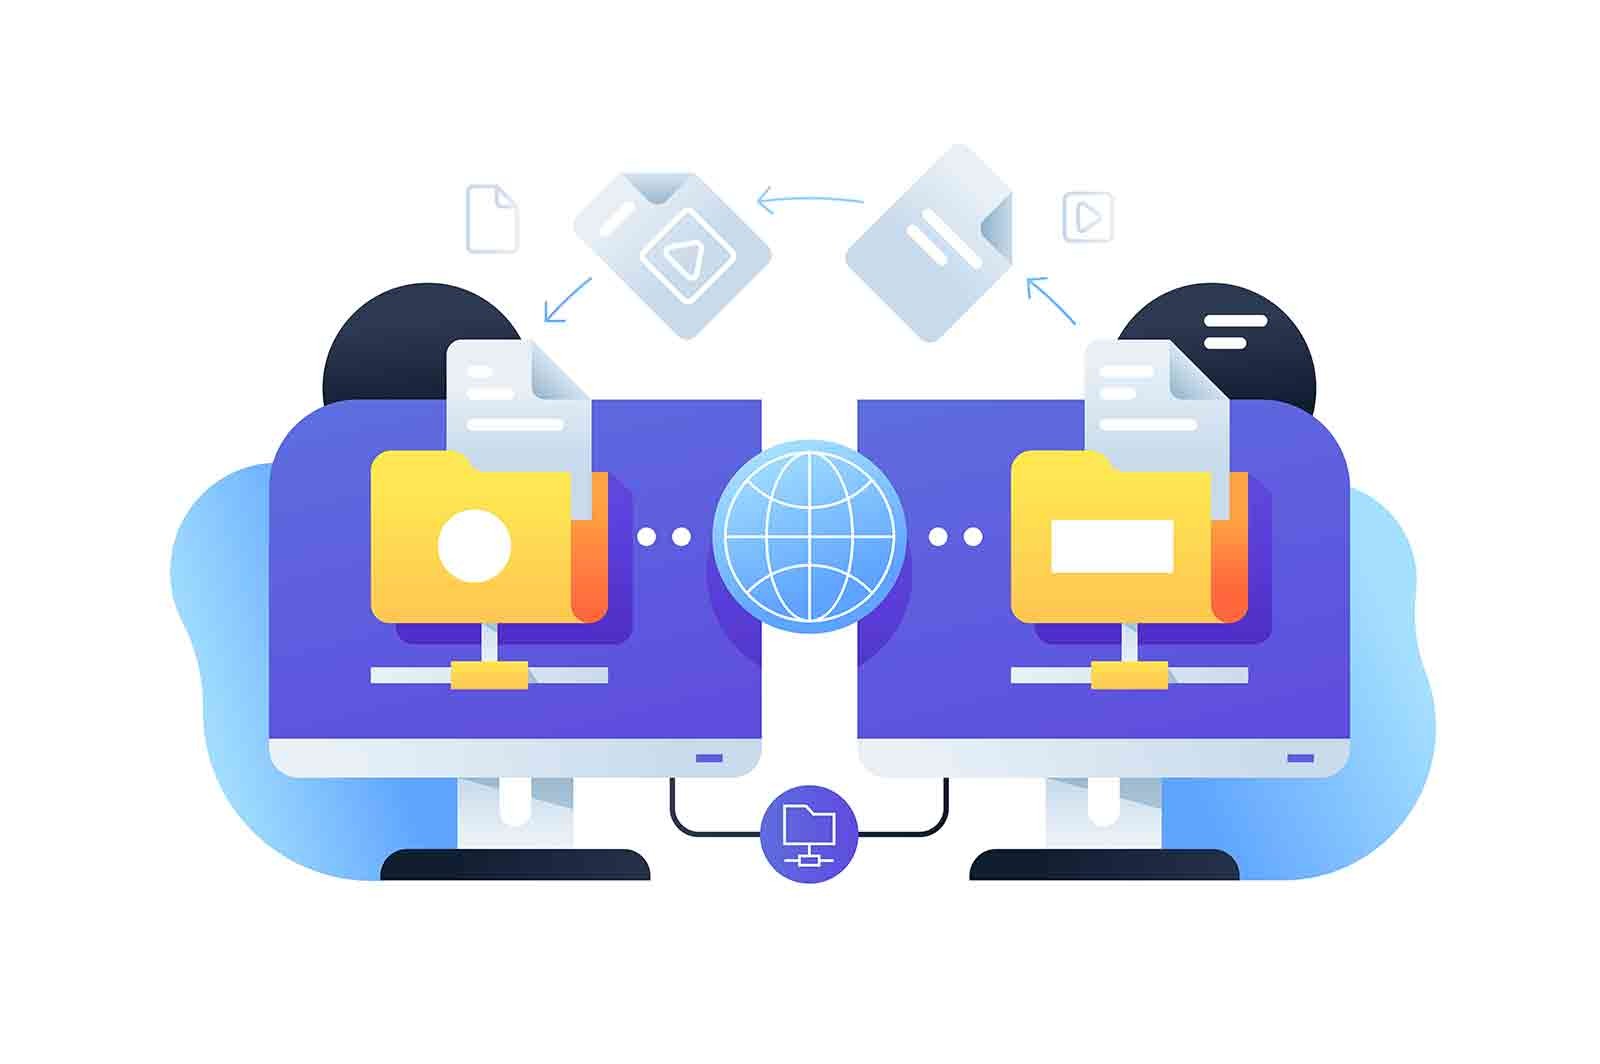 Computer digital file sharing using connection with online app. Technology for web business documents using network service.